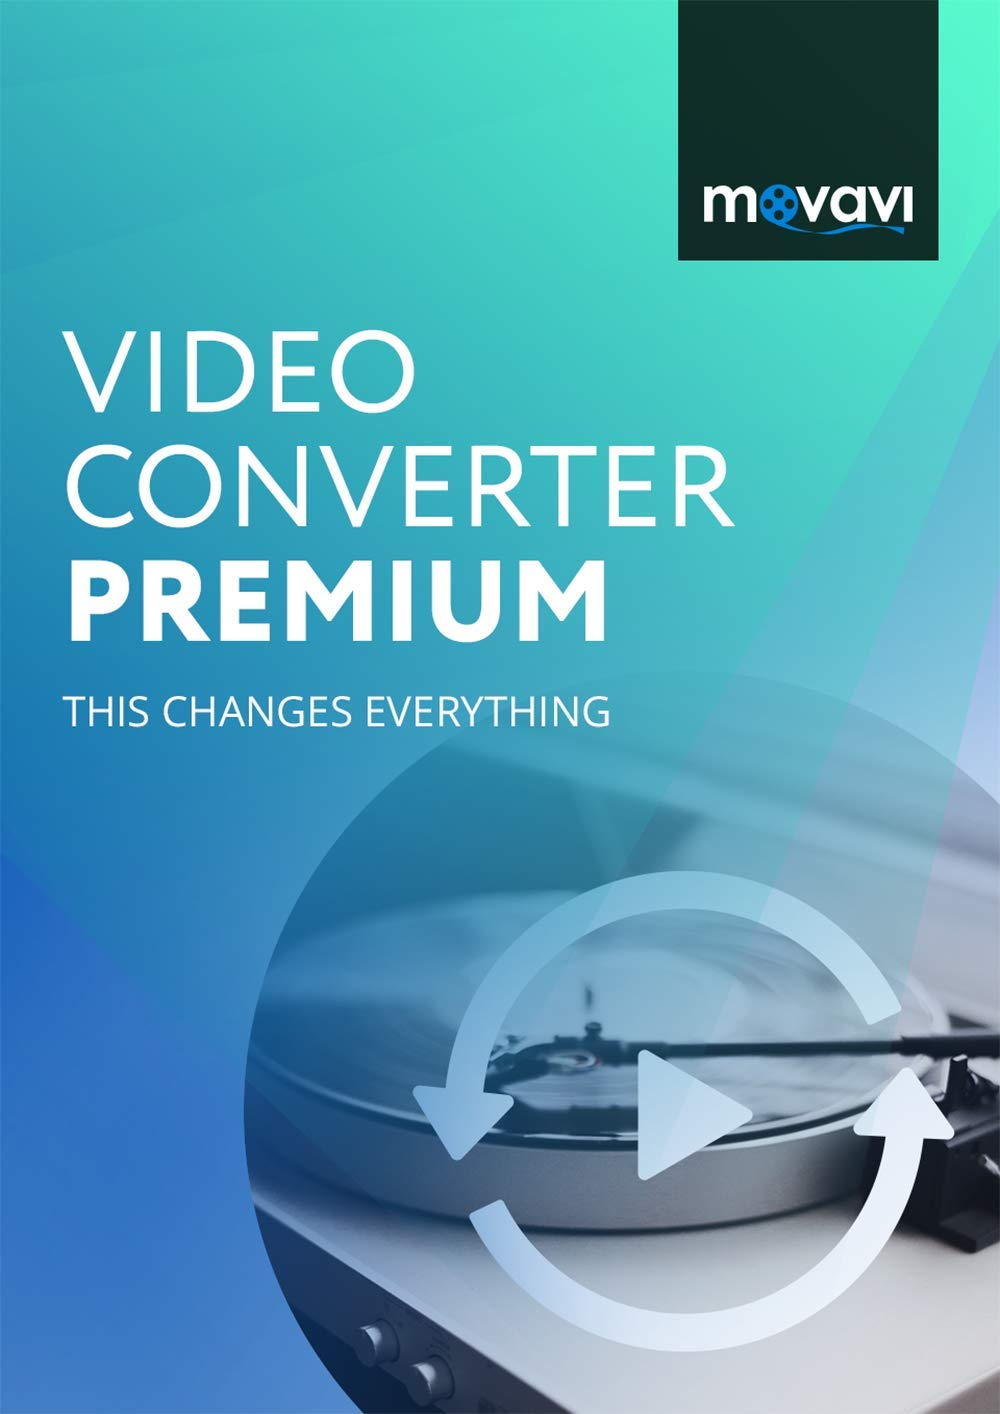 Movavi Video Converter 19 Premium Personal [PC Download] by Movavi Software Inc